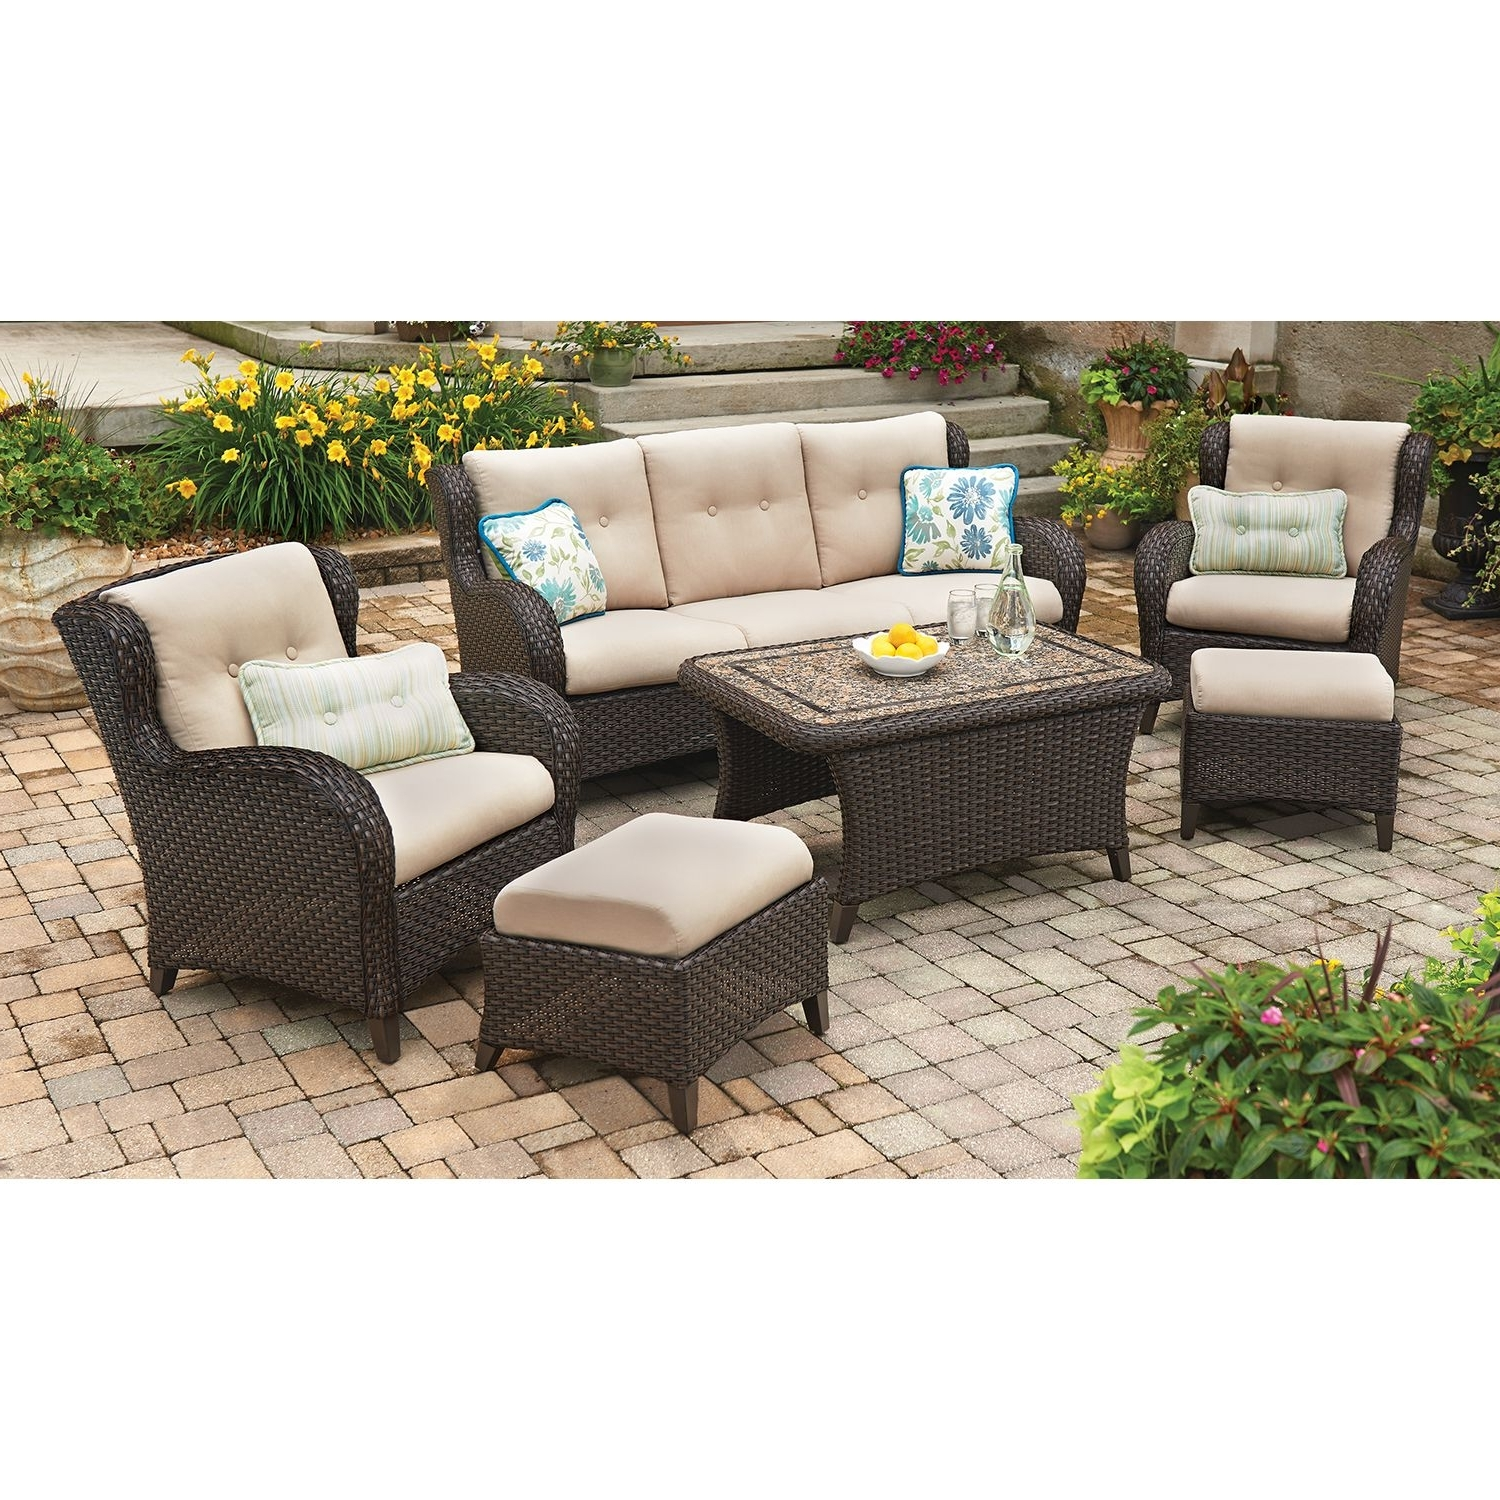 Sam's Club Chaise Lounge Chairs Regarding Most Up To Date Member's Mark Heritage 6 Piece Deep Seating Set With Premium (View 14 of 15)